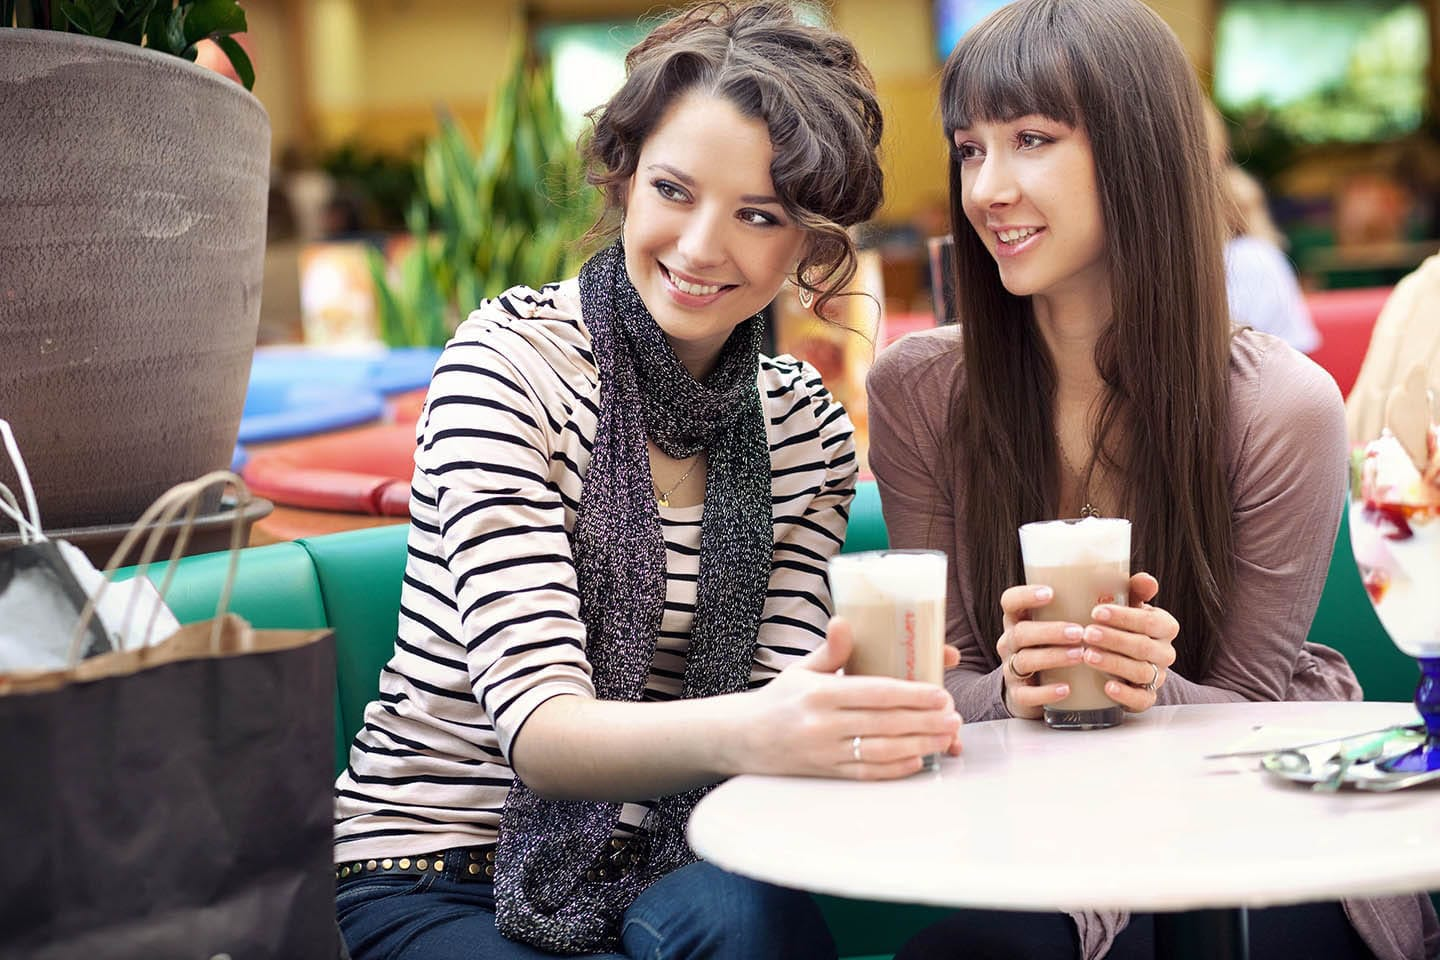 Two young females at a coffee shop smiling and talking